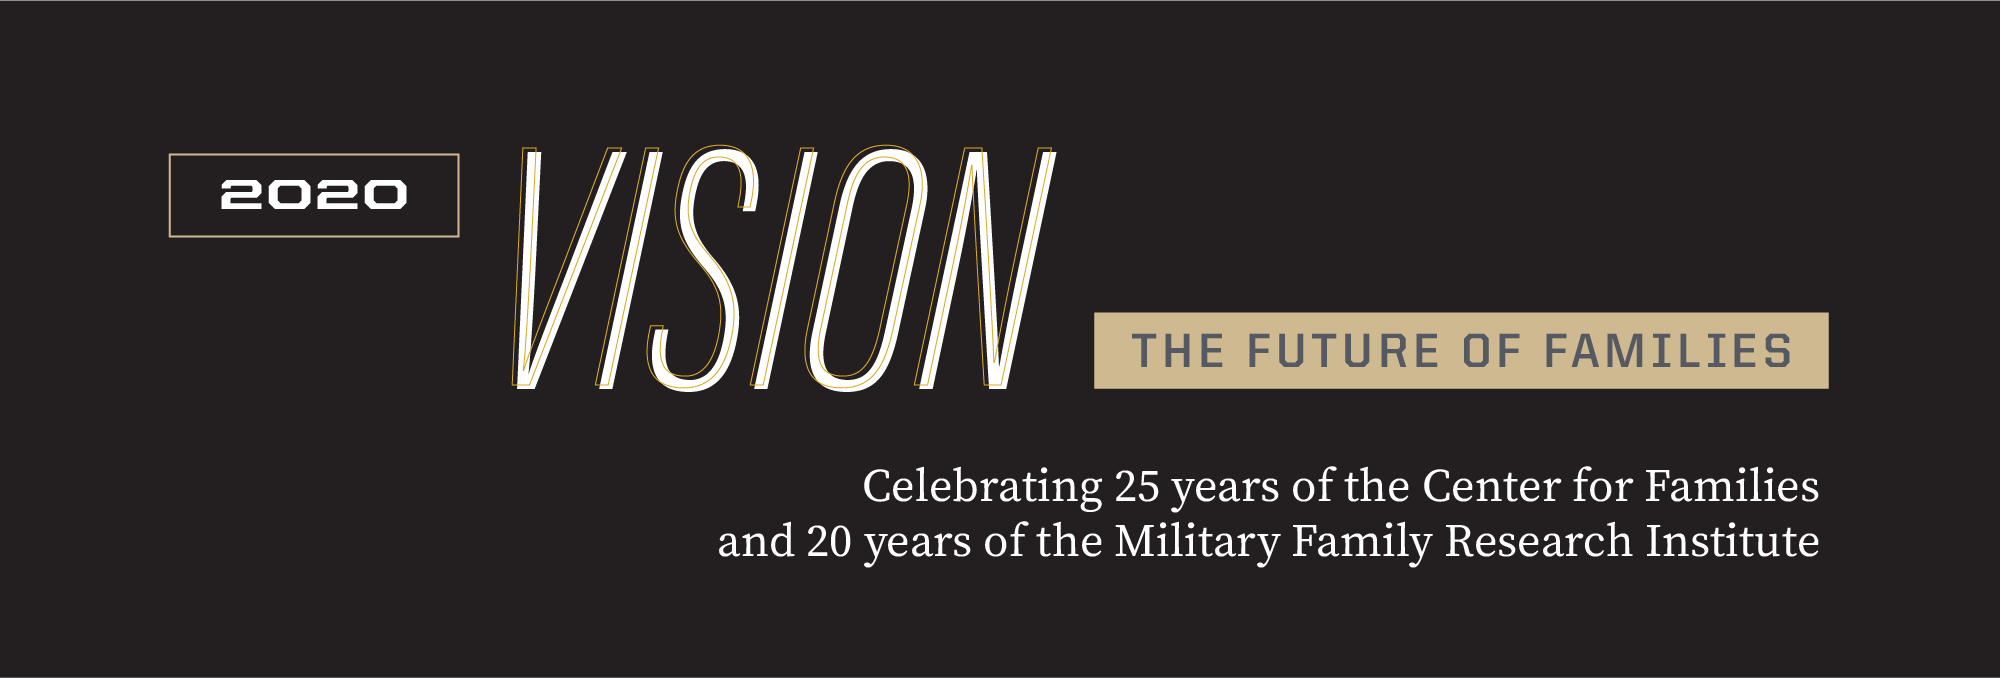 2020 Vision The Future of Families Celebrating 25 years of the Center for the Families and 20 years of the Military Family Research Institute at Purdue University